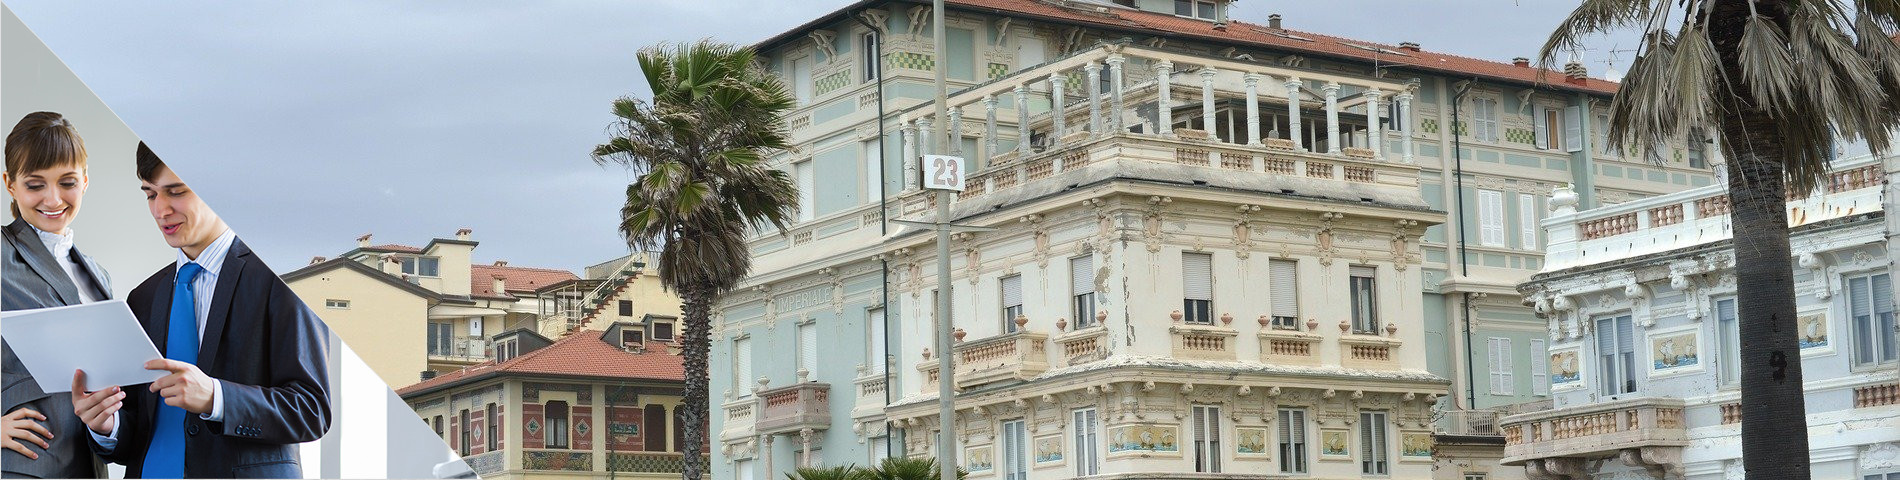 Viareggio - Business Individuale